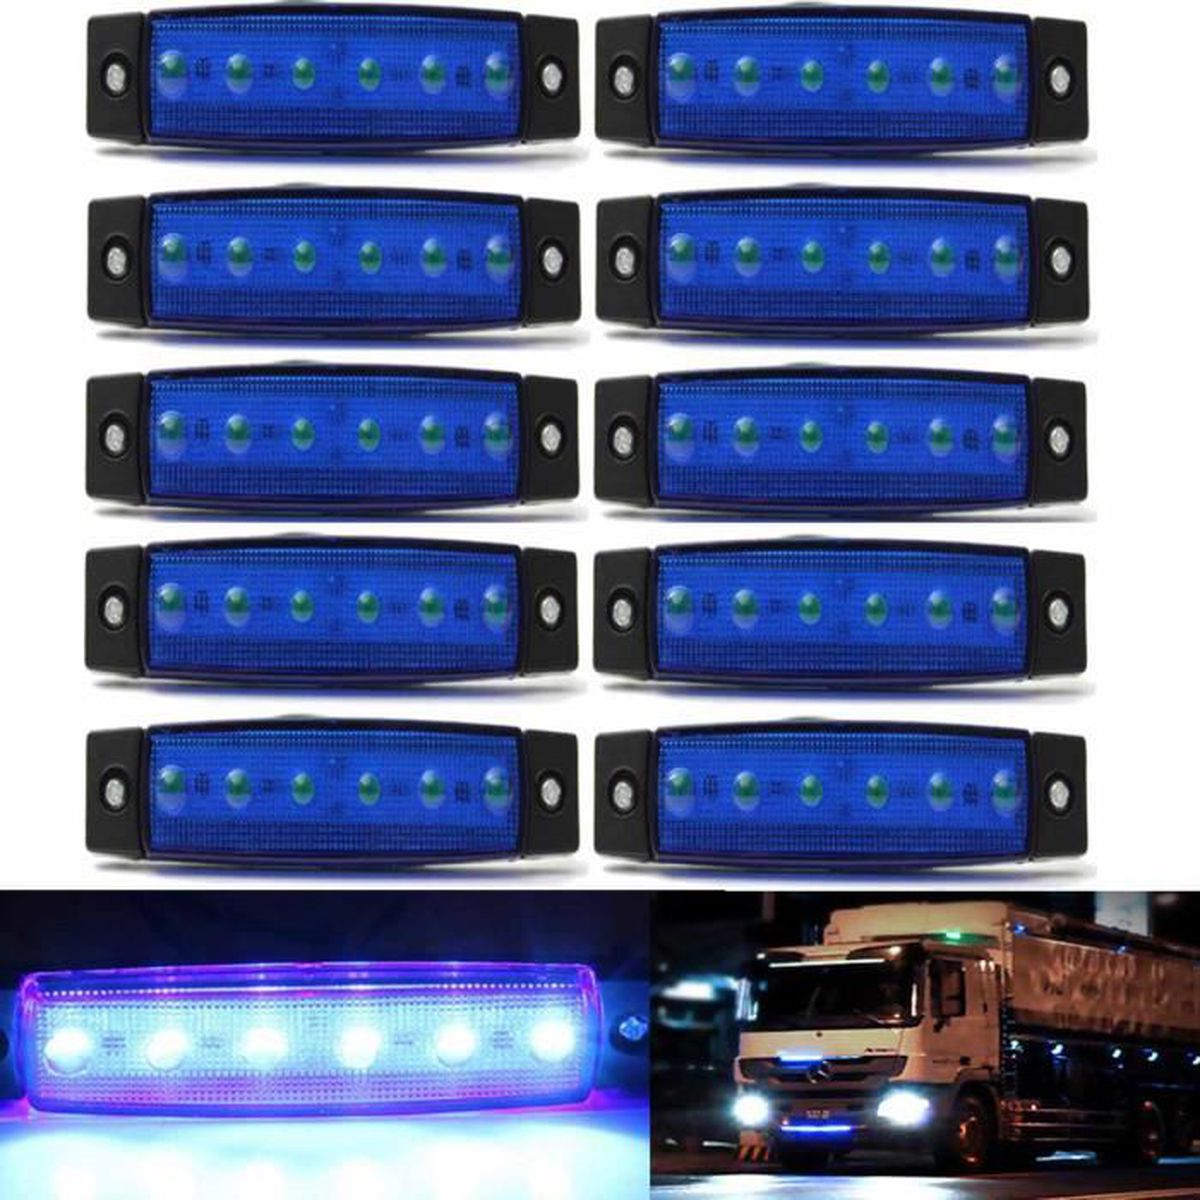 u 10pcs 24v 0 5w 6 smd led feux de gabarit laterale pour camion camper shassis remorques bleu. Black Bedroom Furniture Sets. Home Design Ideas